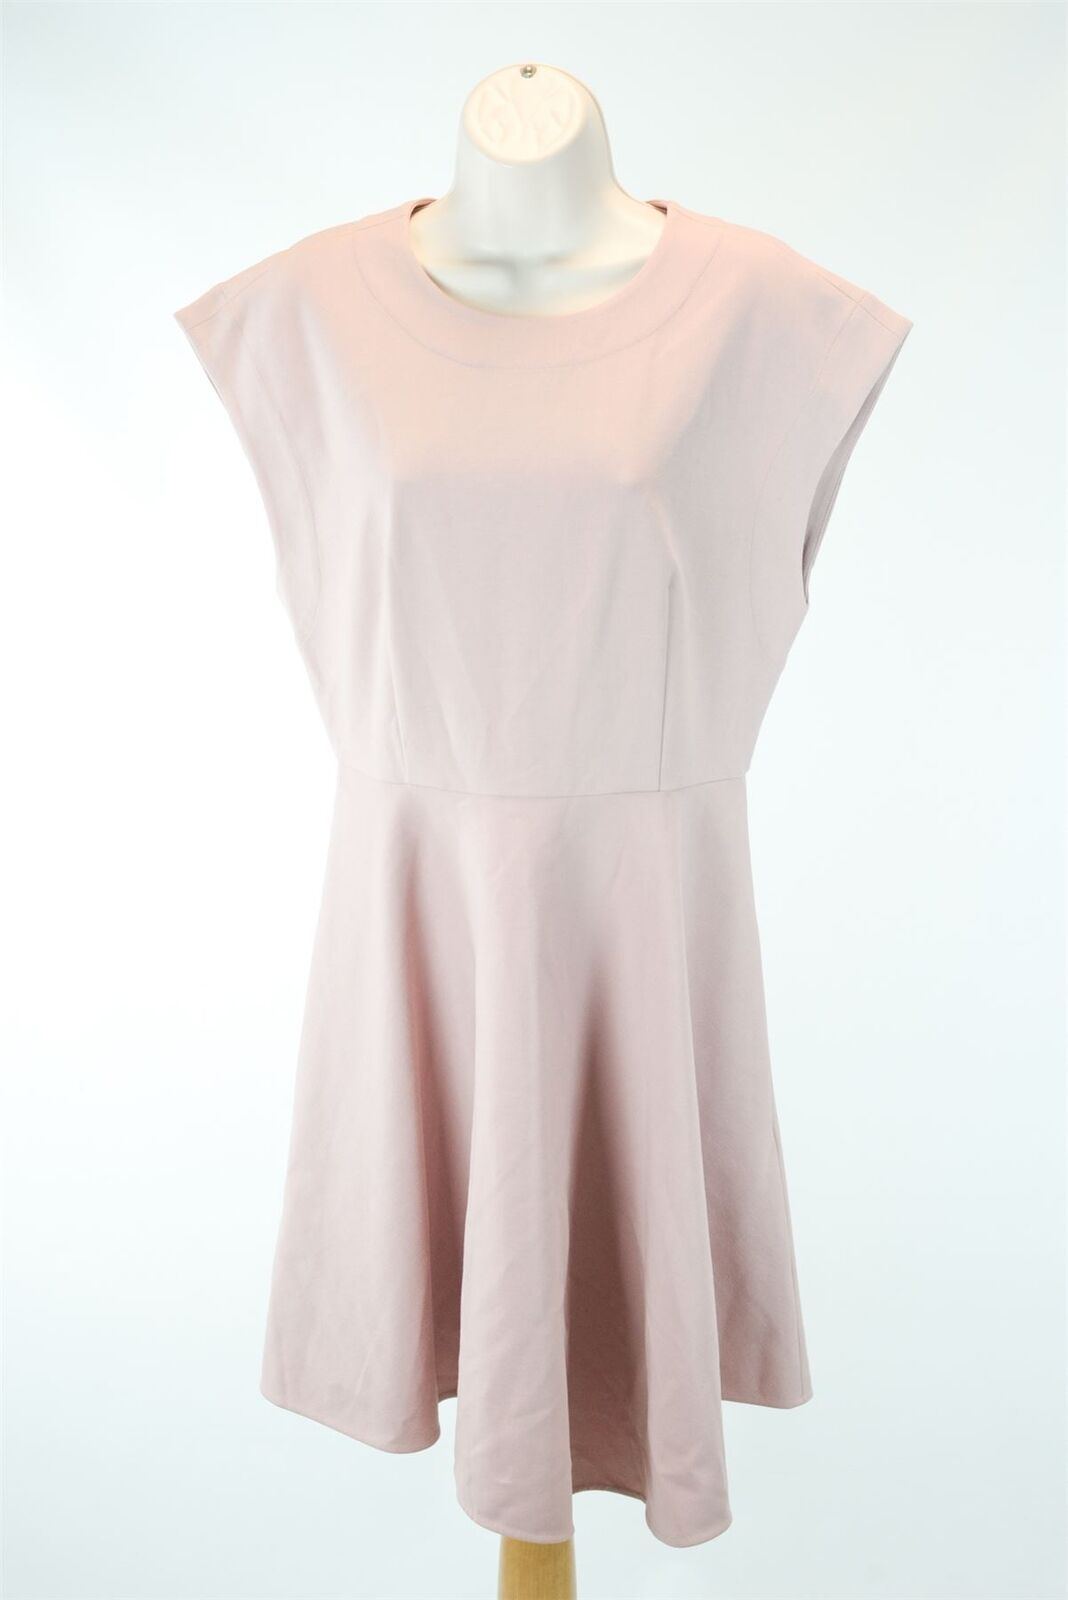 TIBI NEW YORK Pink Short Sleeve Dress, US 4